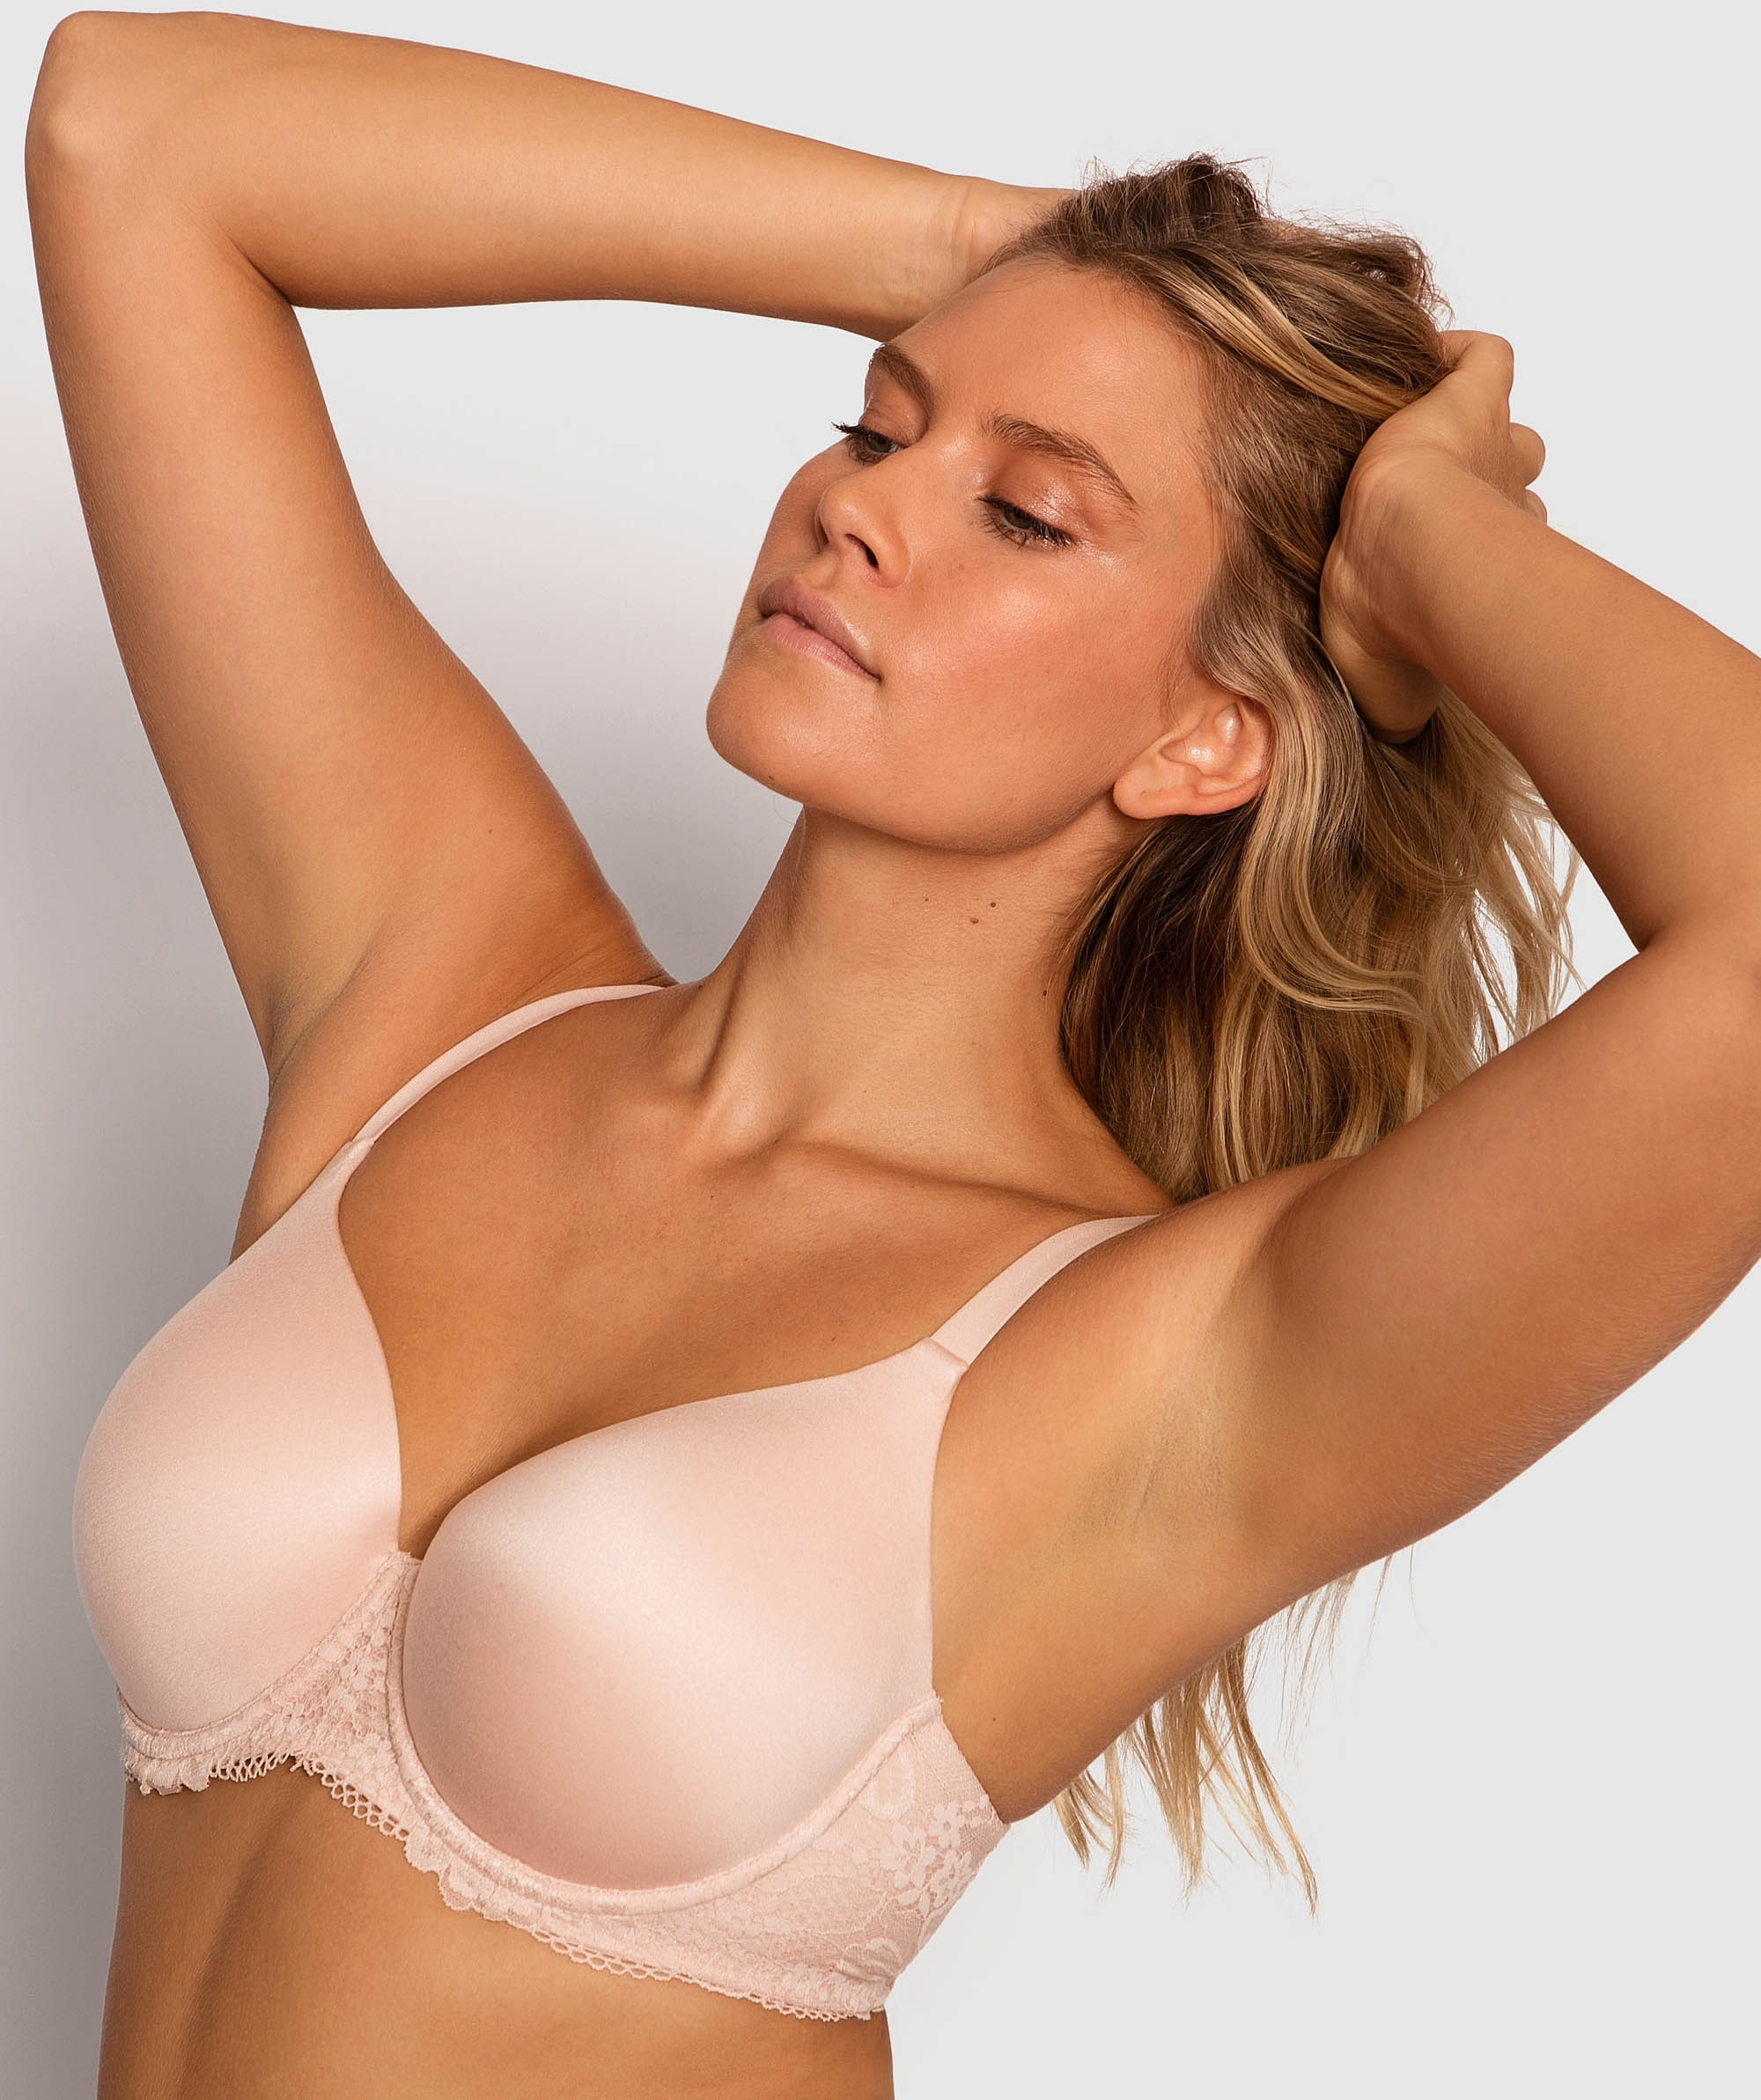 Body Bliss Lace 2nd Gen Full Cup Bra - Blush Pink